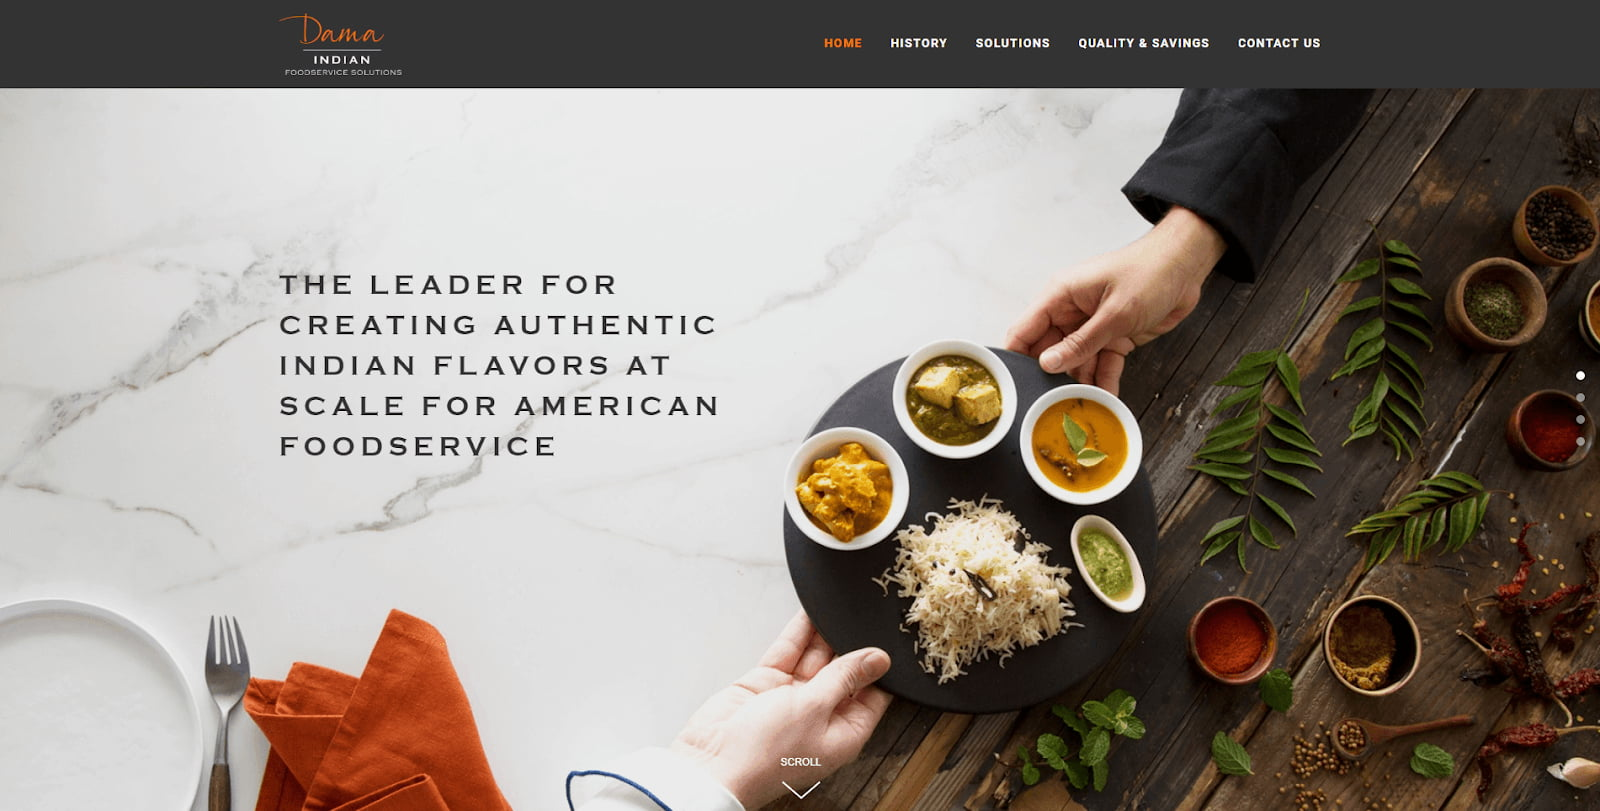 Website Design for Indian Food Service by The Coder